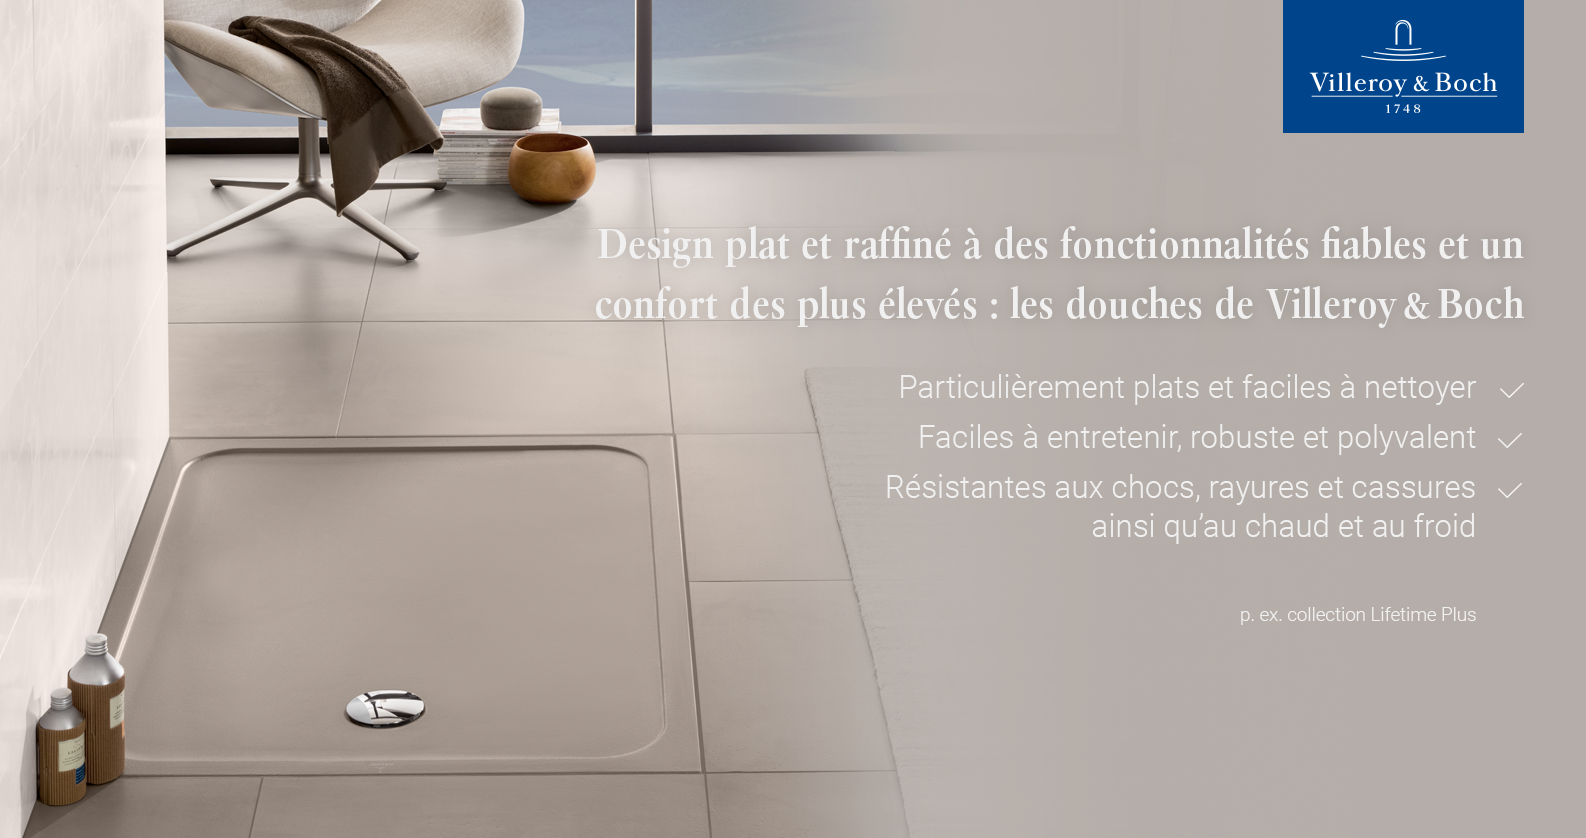 Villeroy & Boch Lifetime Plus receuvers de douche